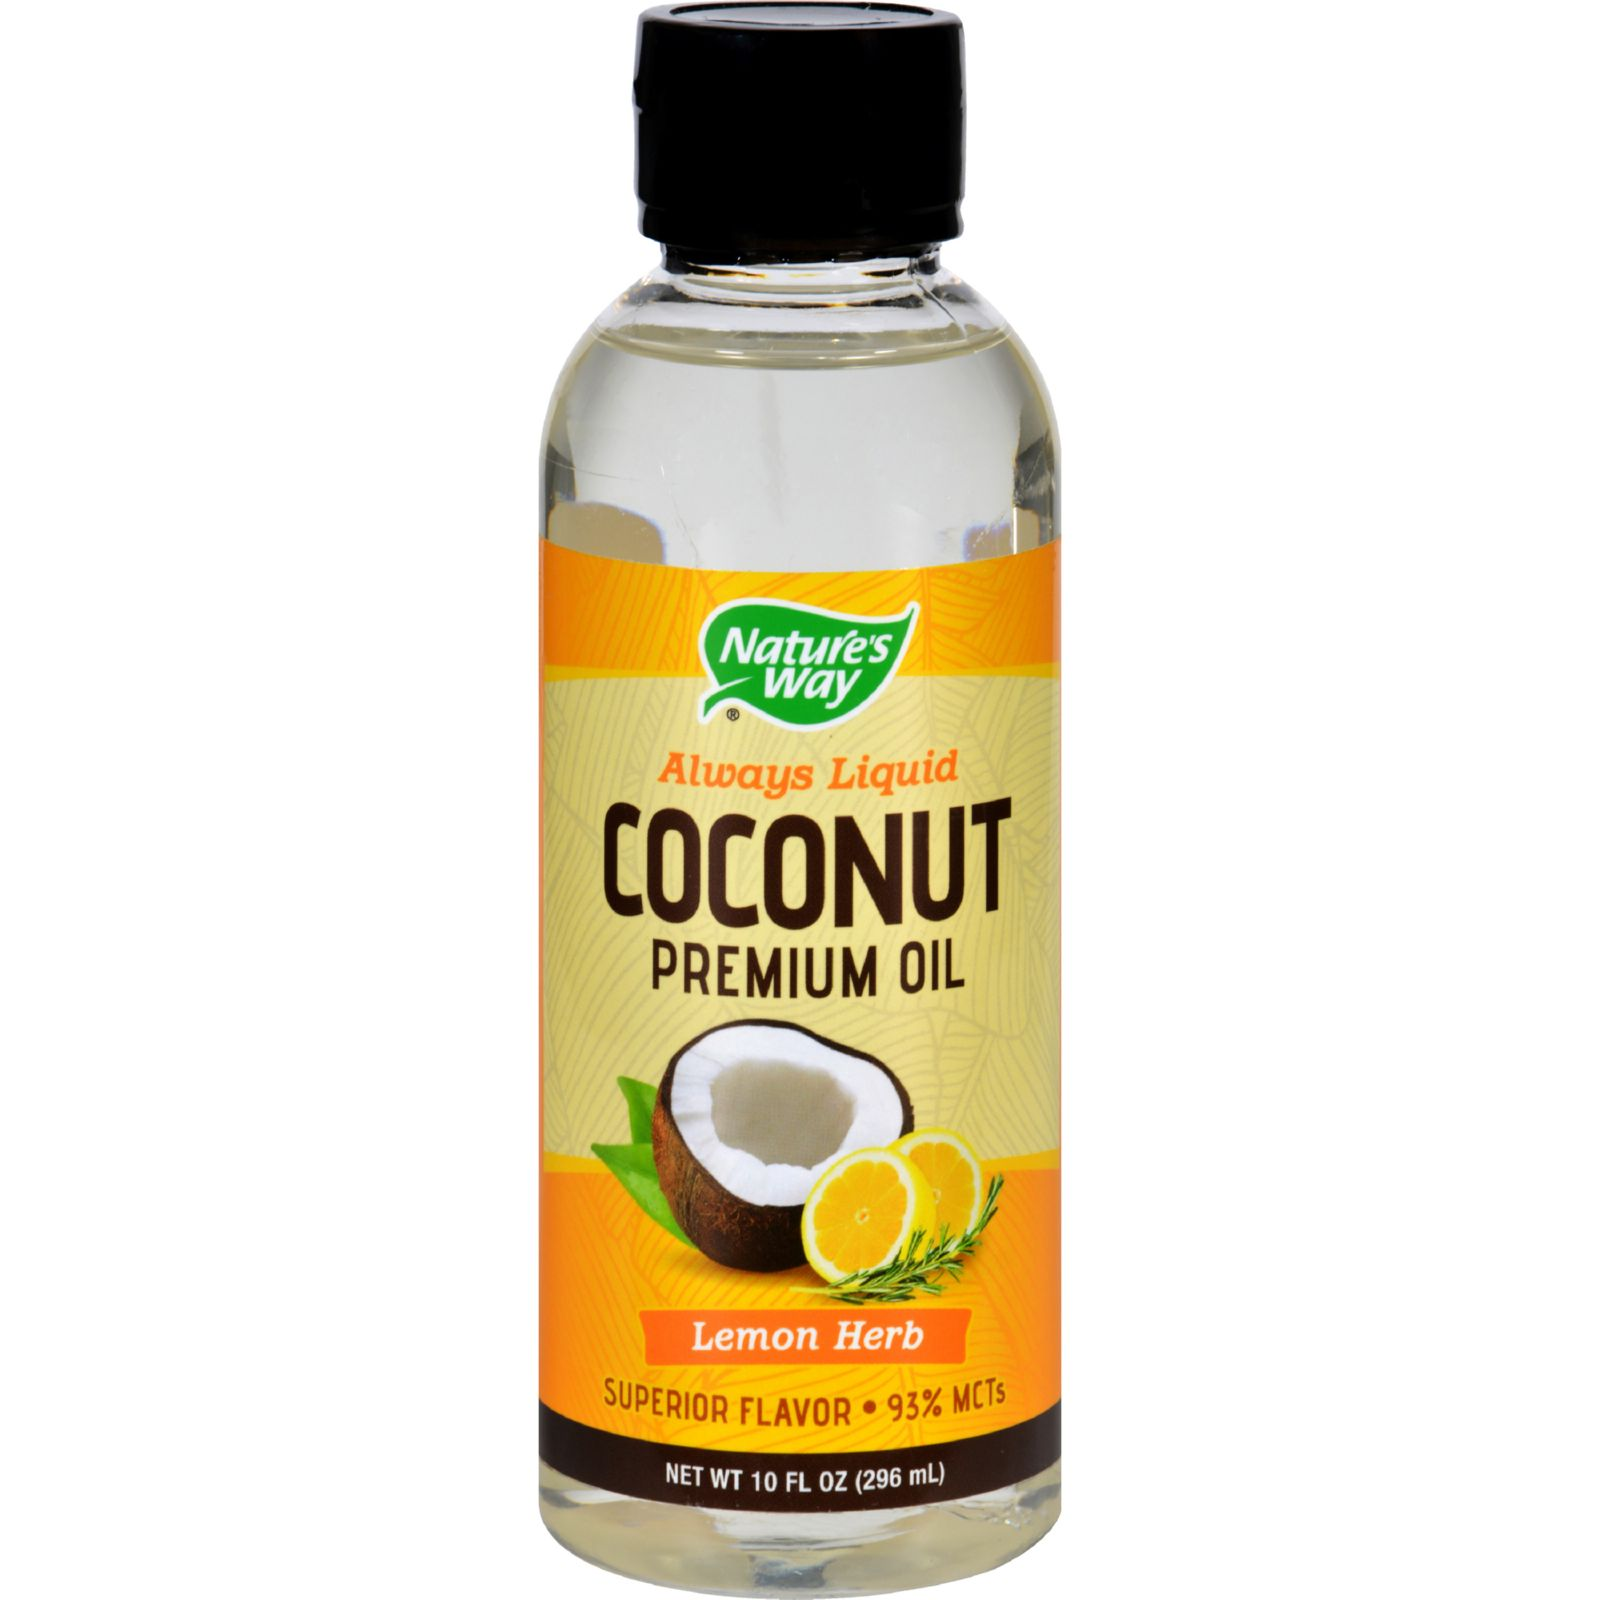 Natures Way Coconut Oil - Premium - Lemon Herb - 10 oz